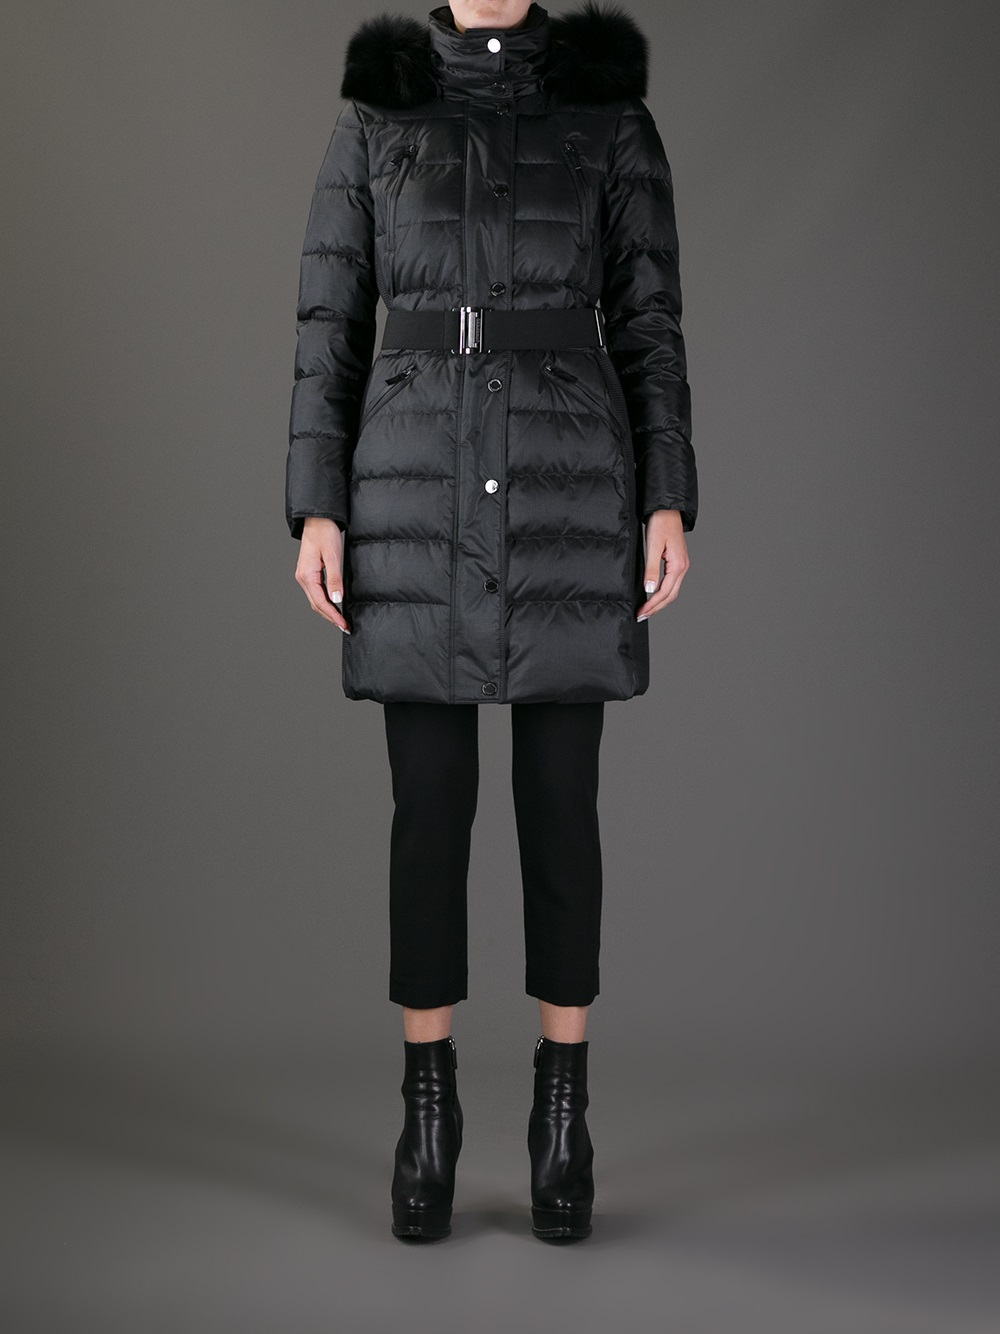 release date quality products fast delivery Burberry Abingerf Padded Coat in Black - Lyst